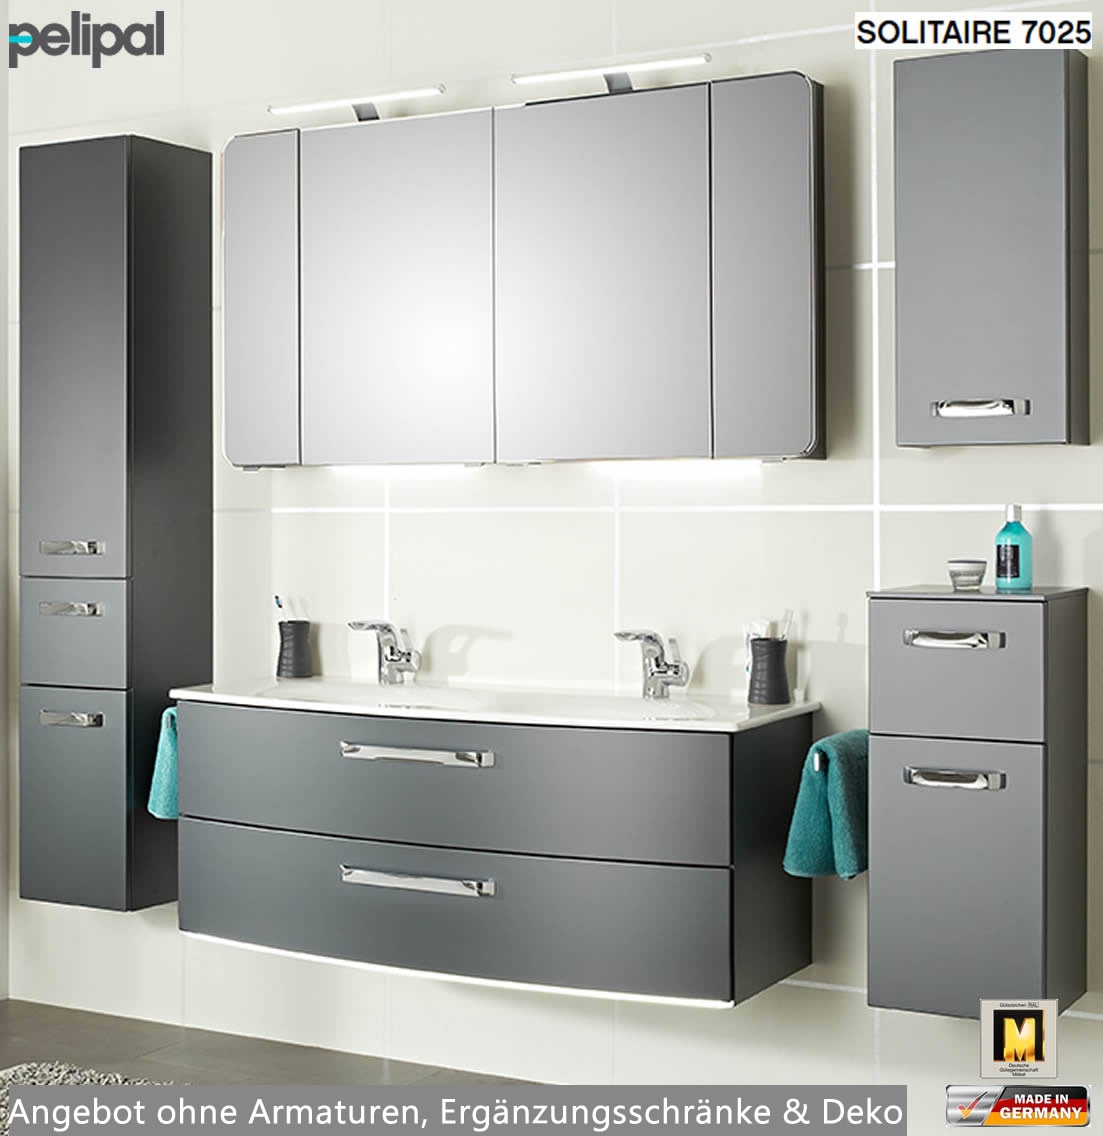 pelipal solitaire 7025 badm bel set mit 1220 mm doppelwaschtisch v4 8 2 ausz ge impuls home. Black Bedroom Furniture Sets. Home Design Ideas